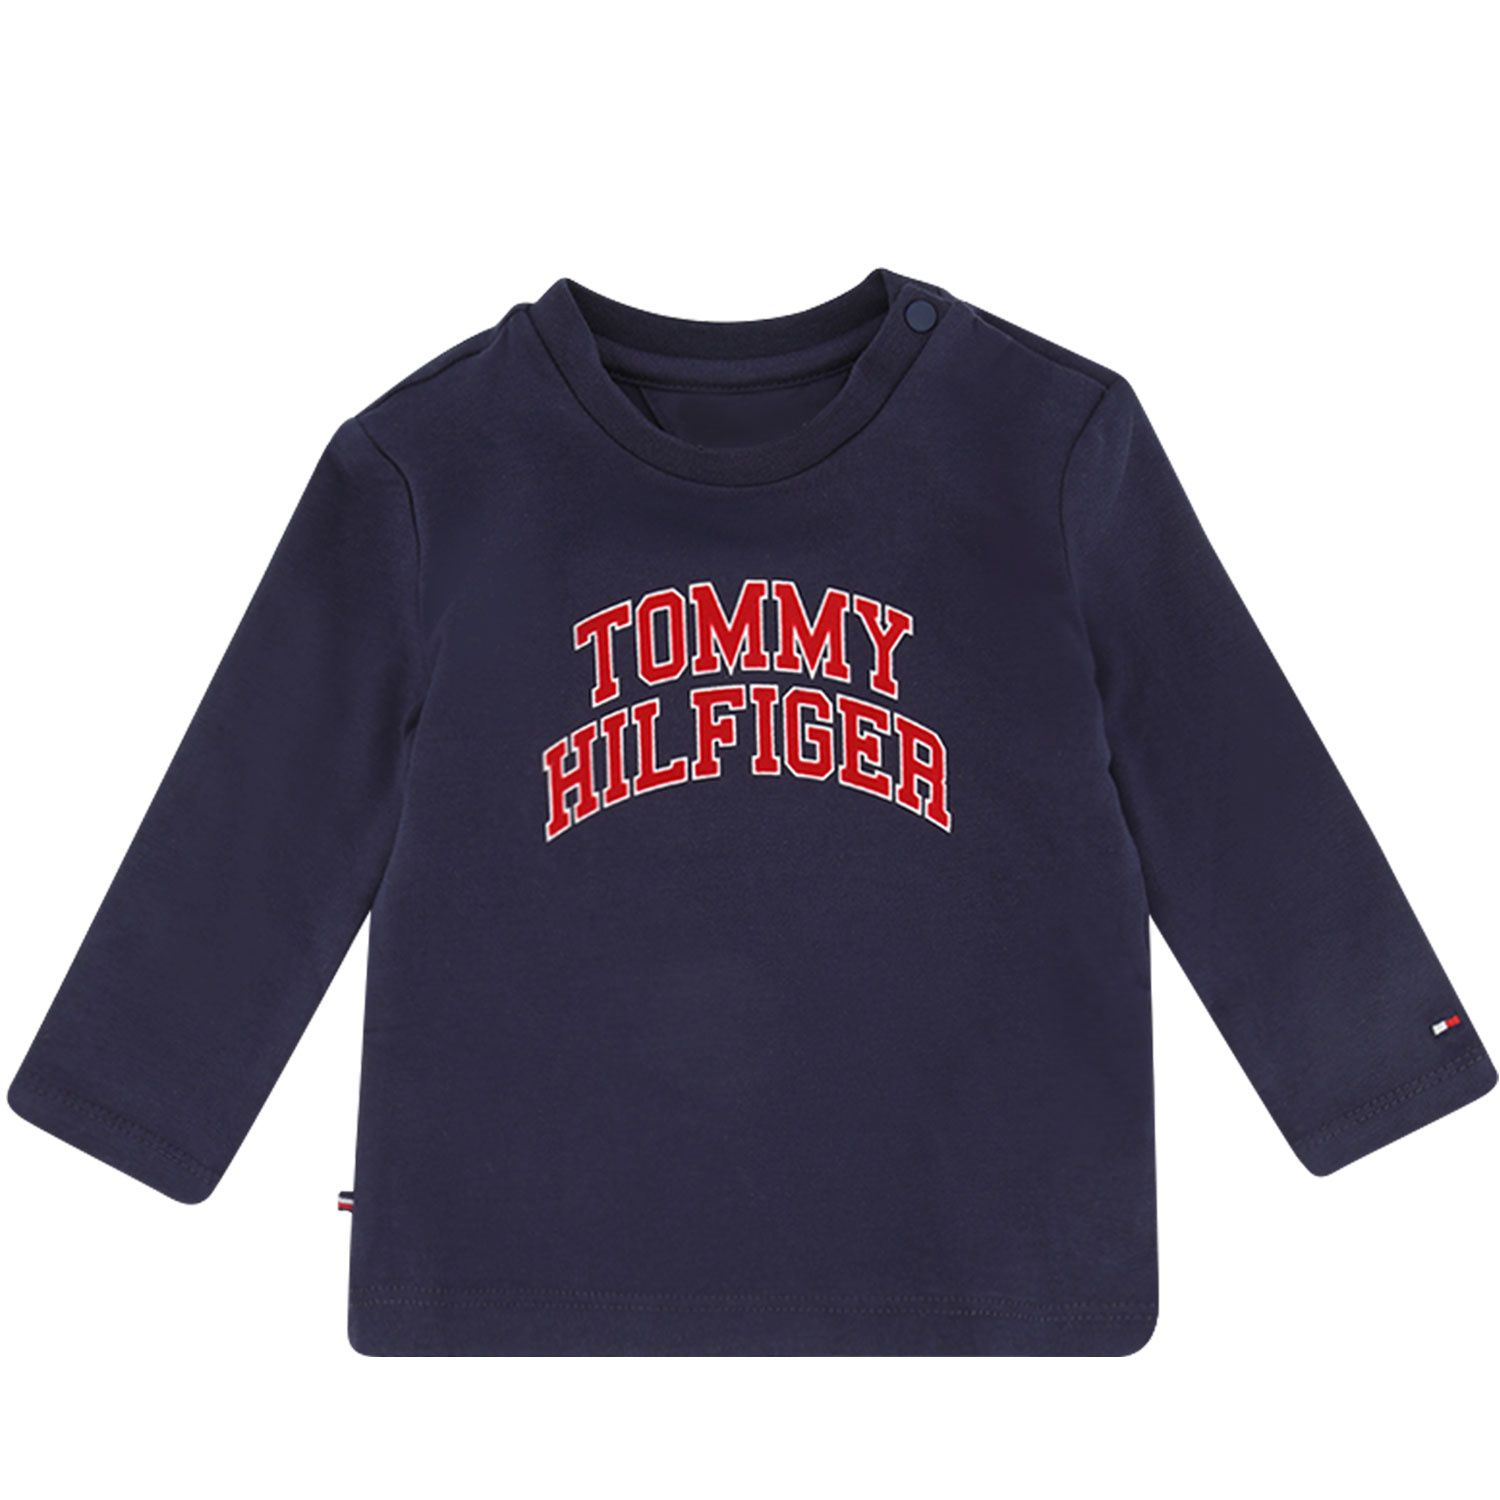 Picture of Tommy Hilfiger KN0KN01156 baby shirt navy